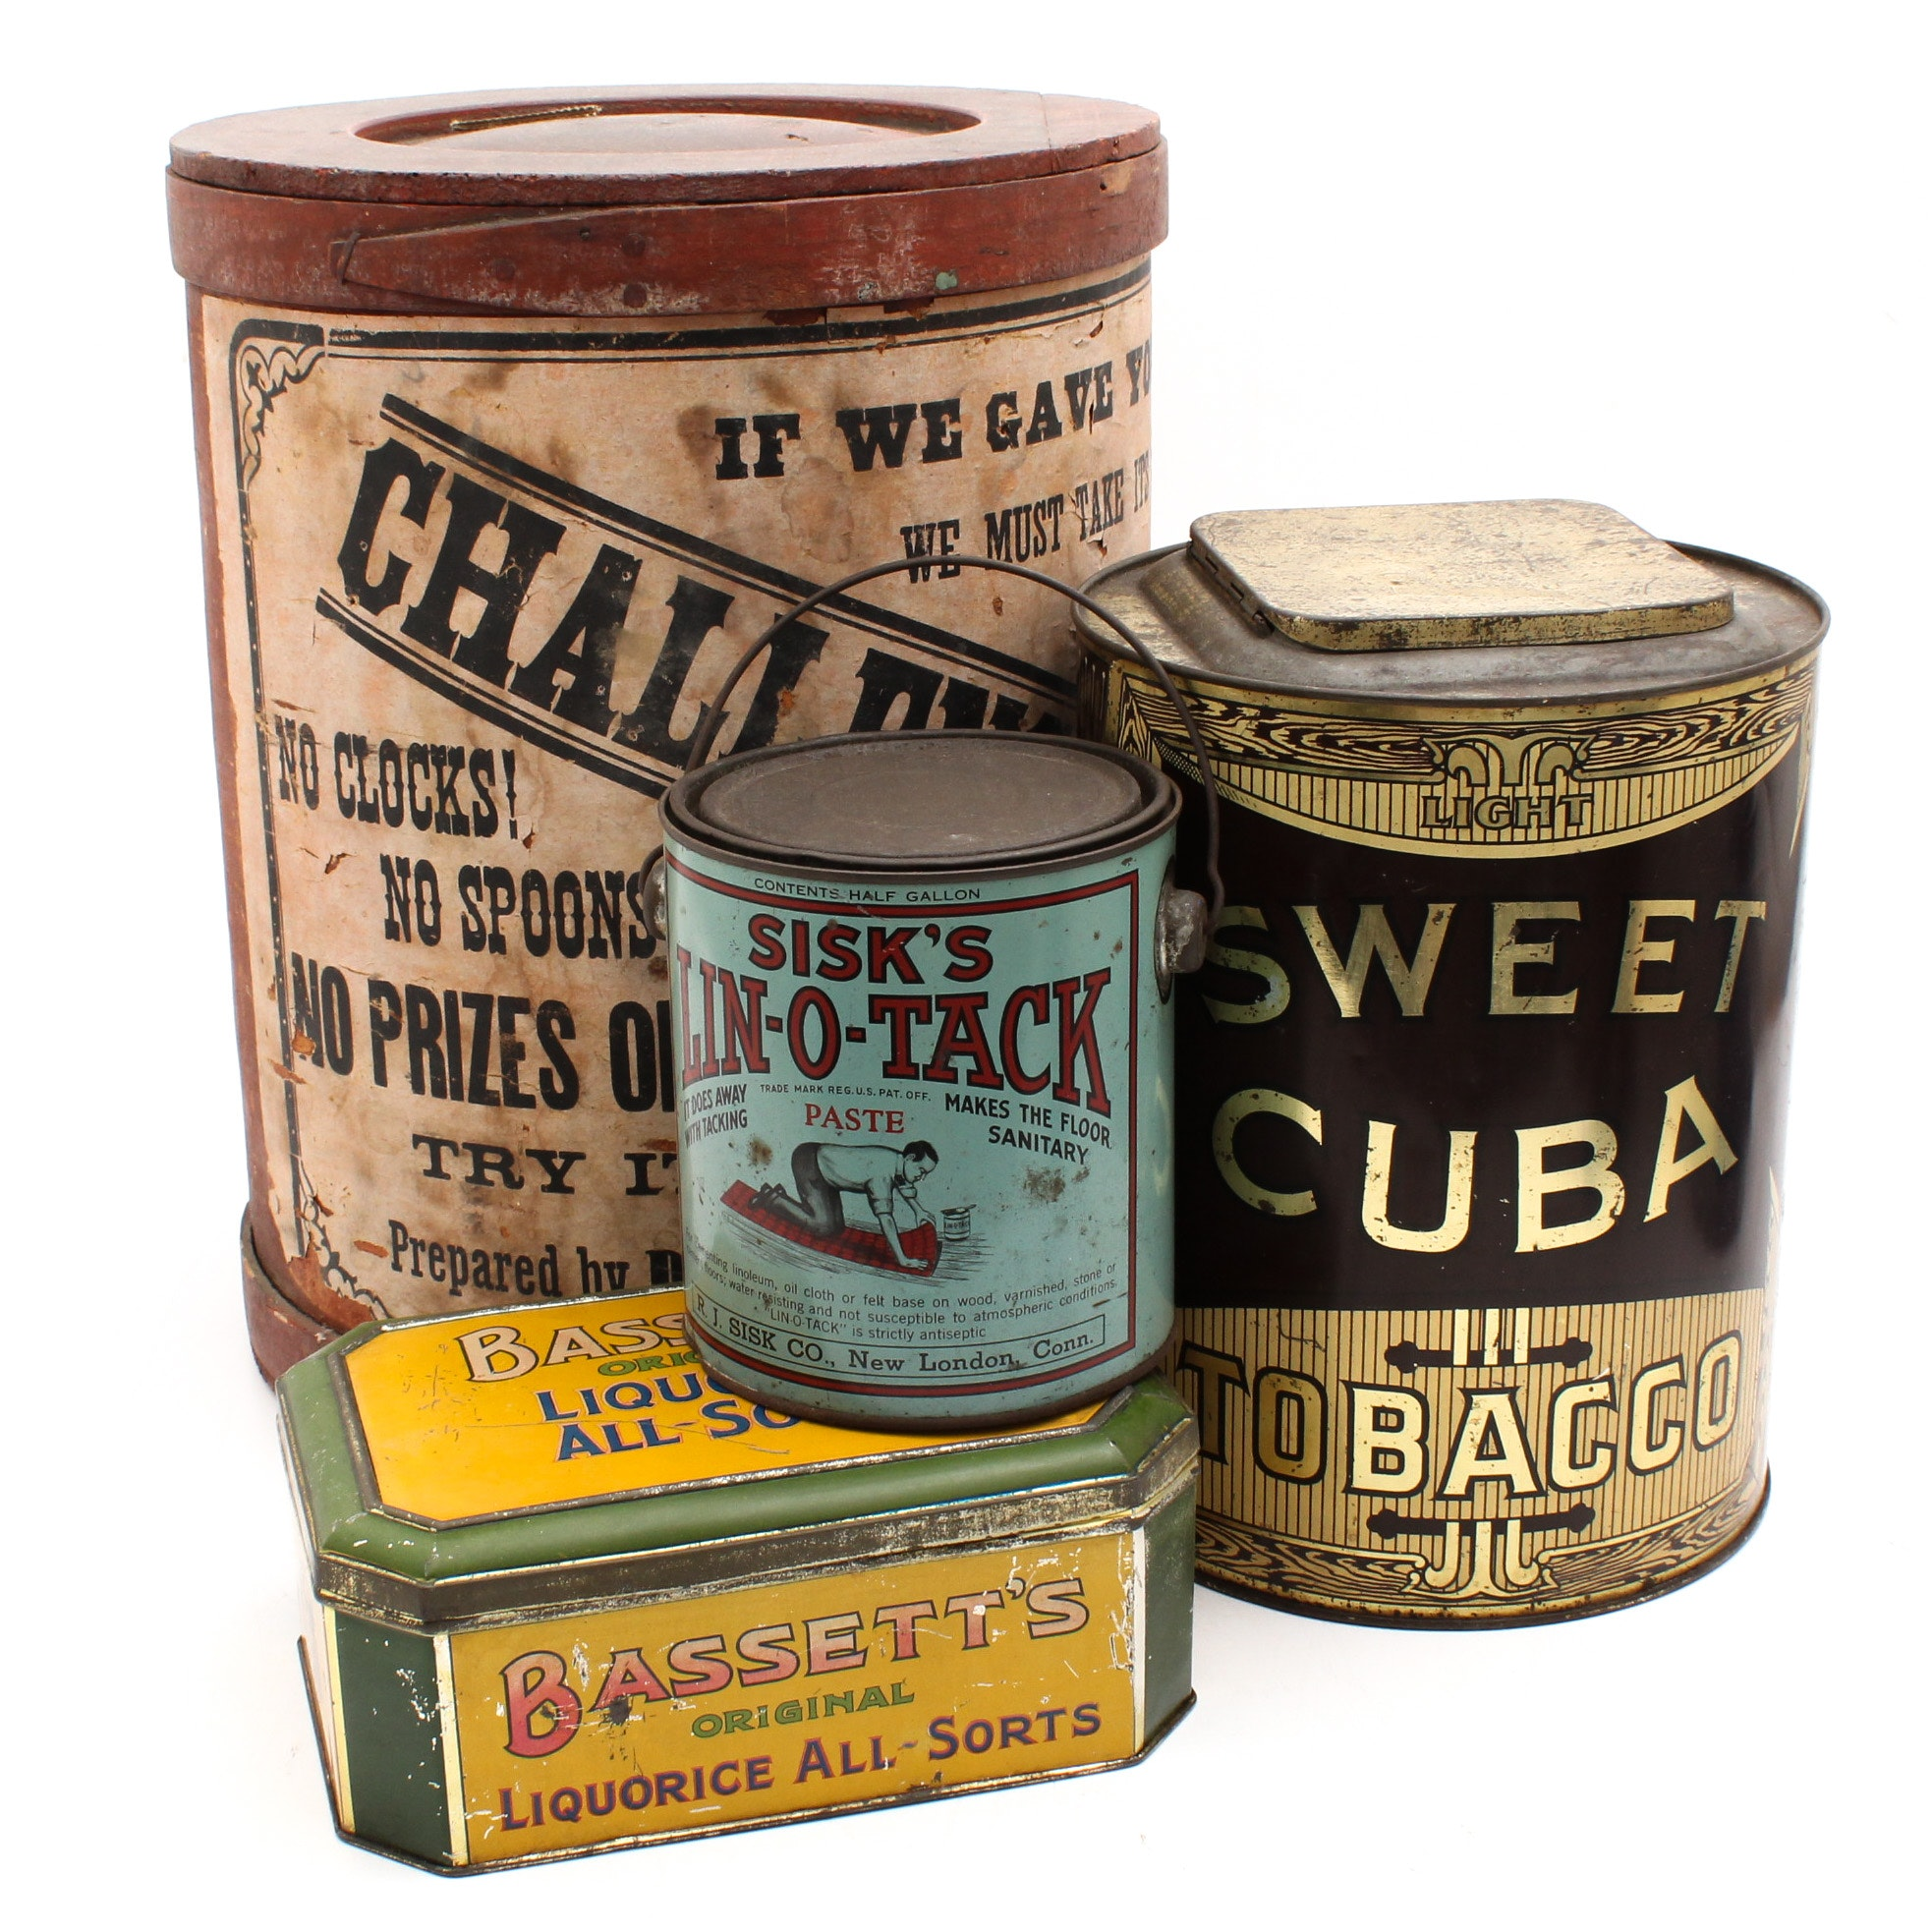 Vintage Advertising Product Packaging